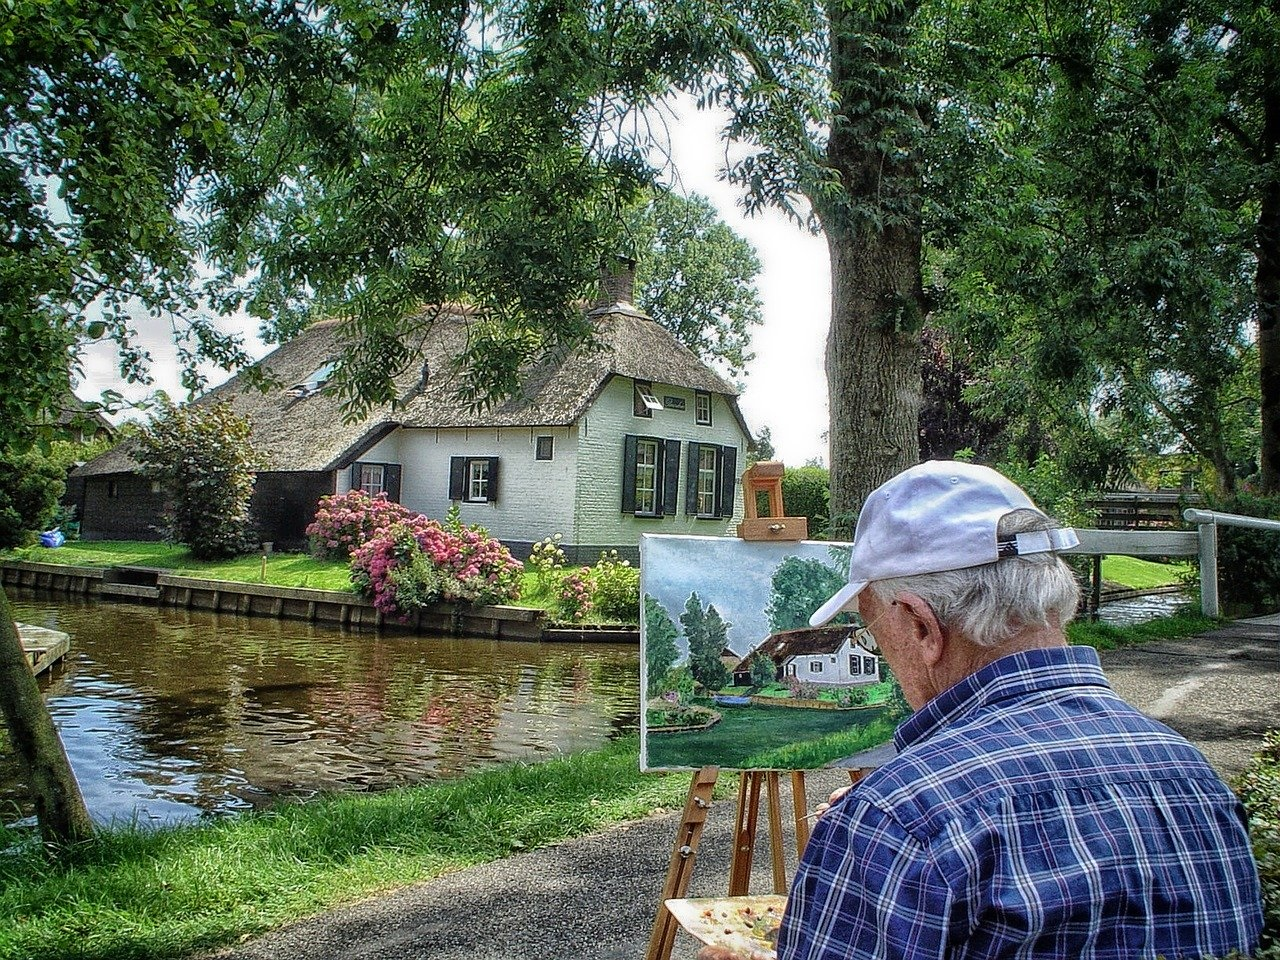 Artist Painting a Thatched Roof Cottage in Netherlands